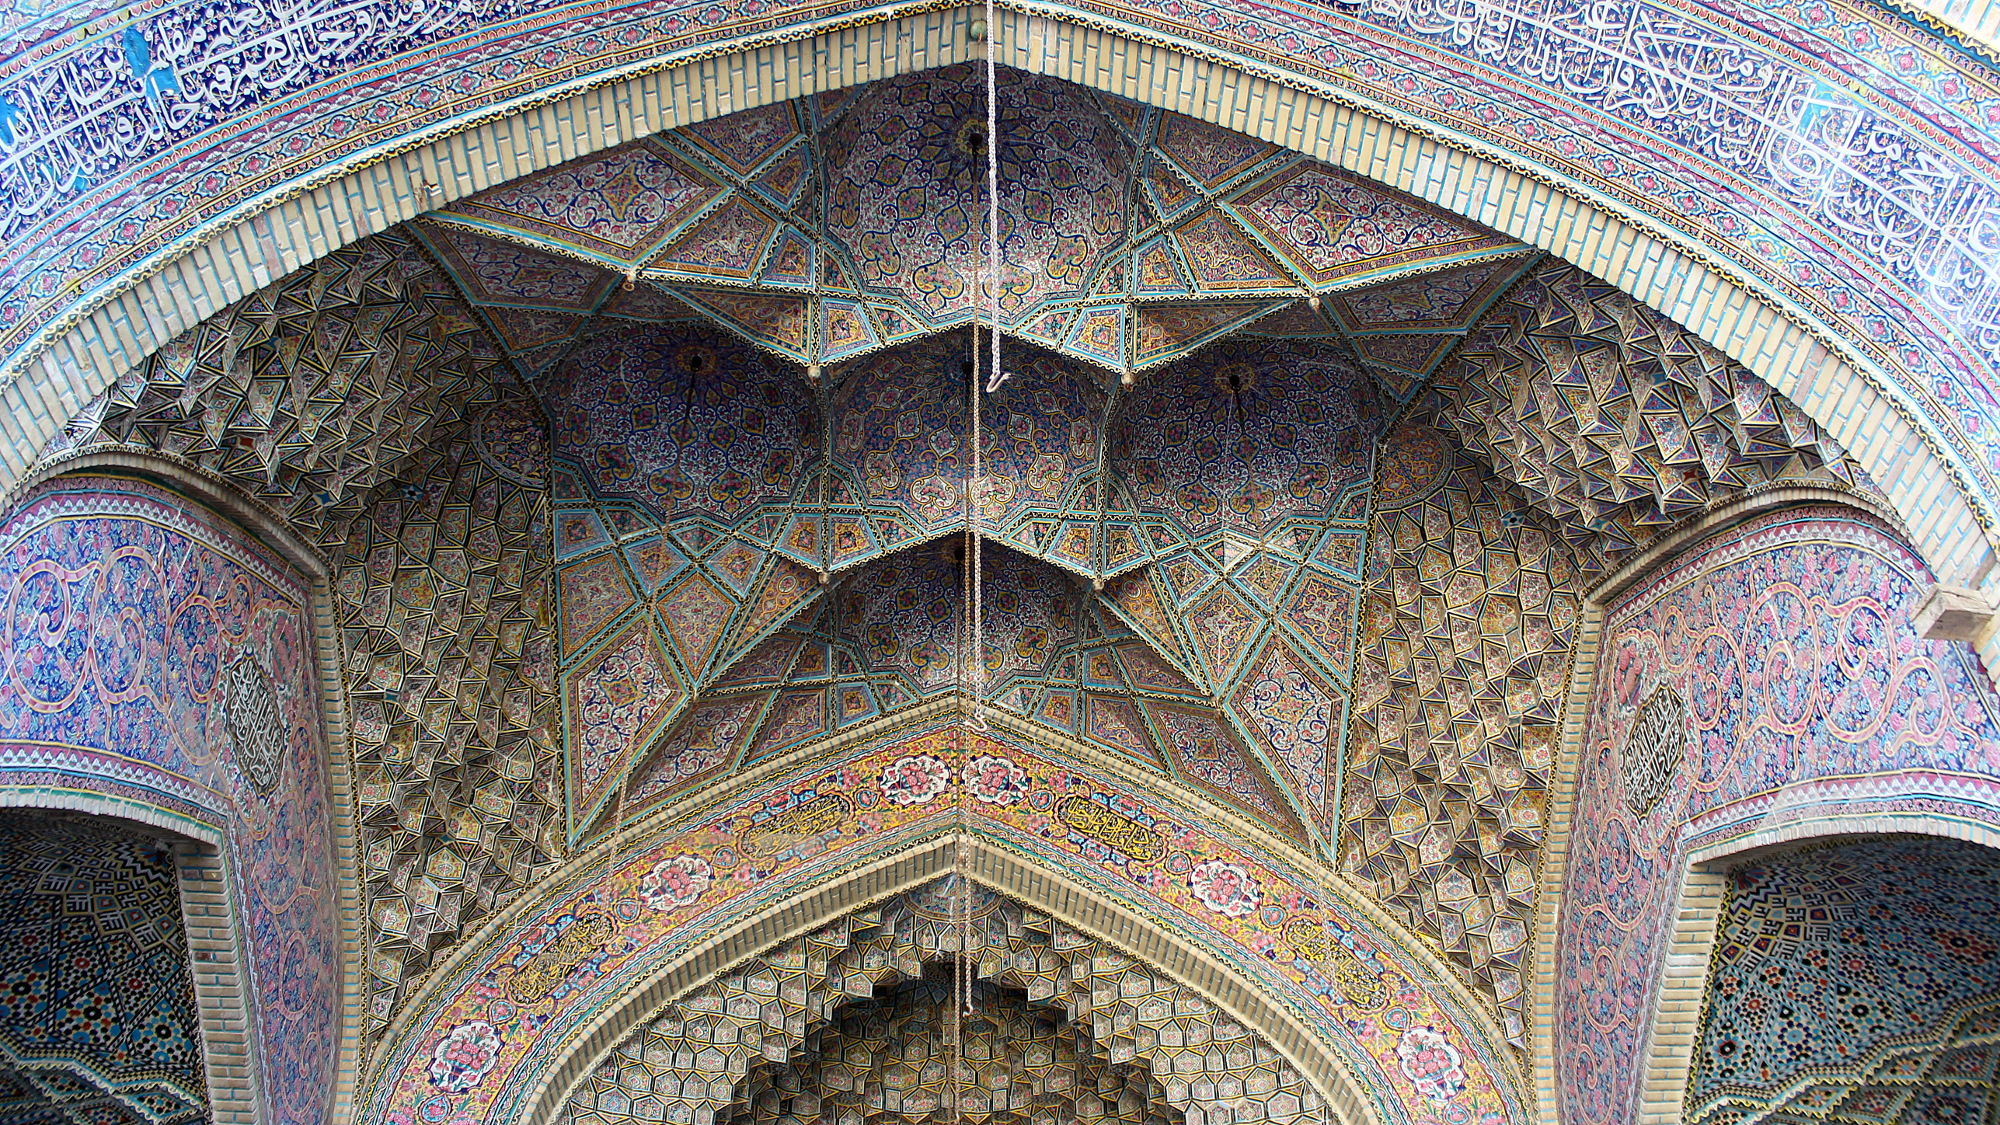 Colored and complex ceiling of the Pink Mosque of Iran.